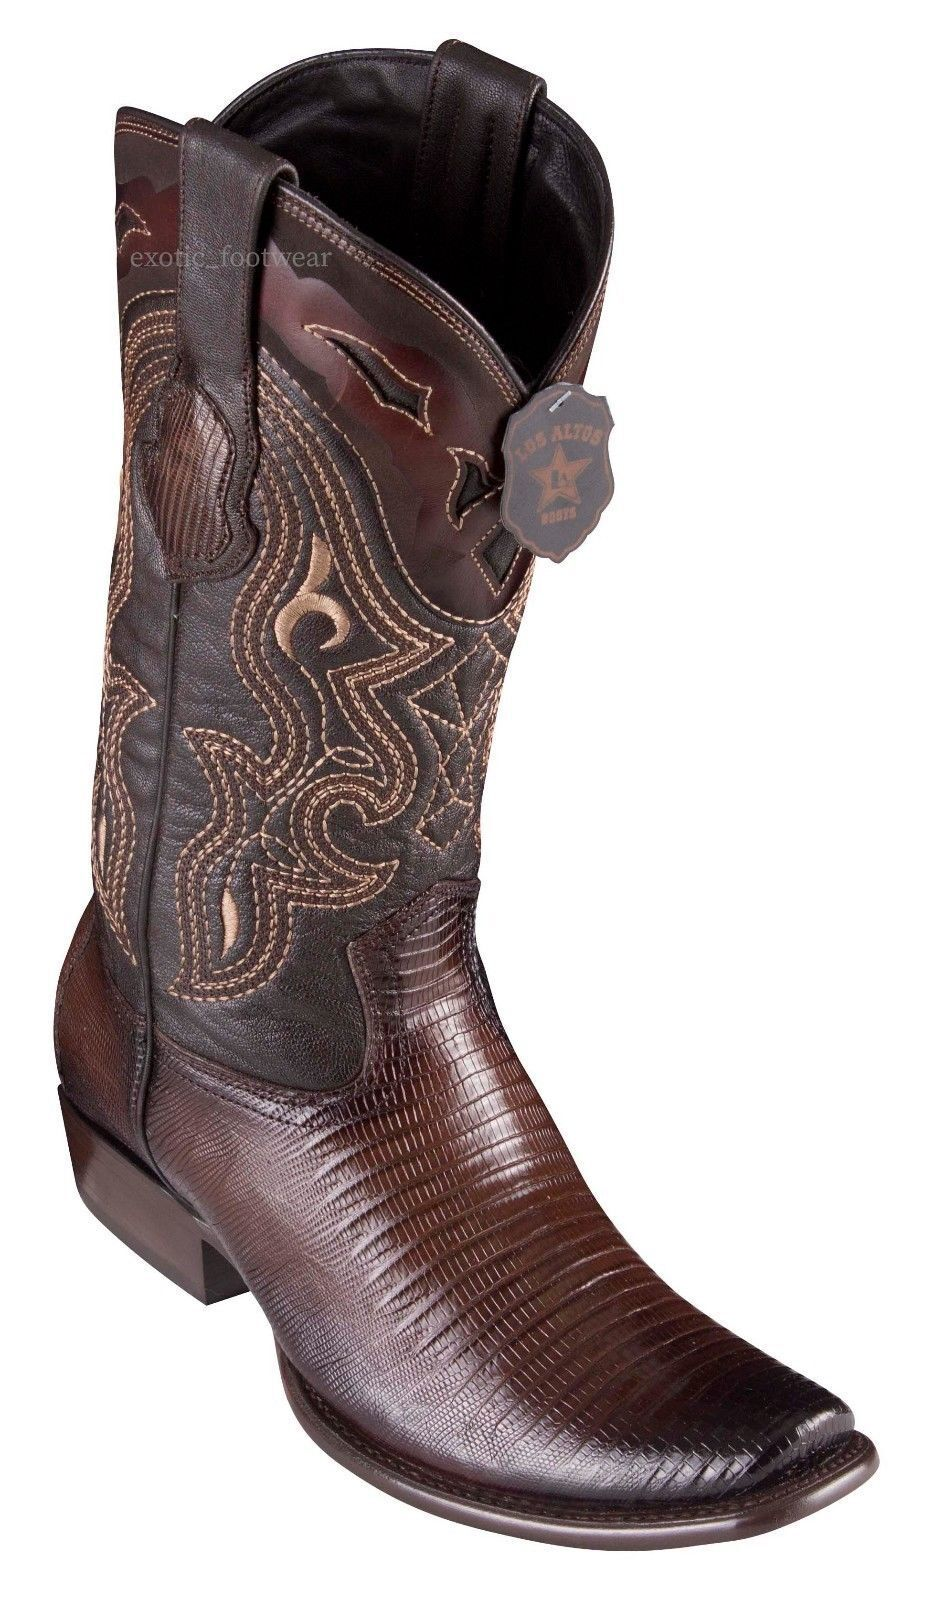 King Exotic BROWN Genuine TEJU LIZARD Western Boot Dubai Square Toe D